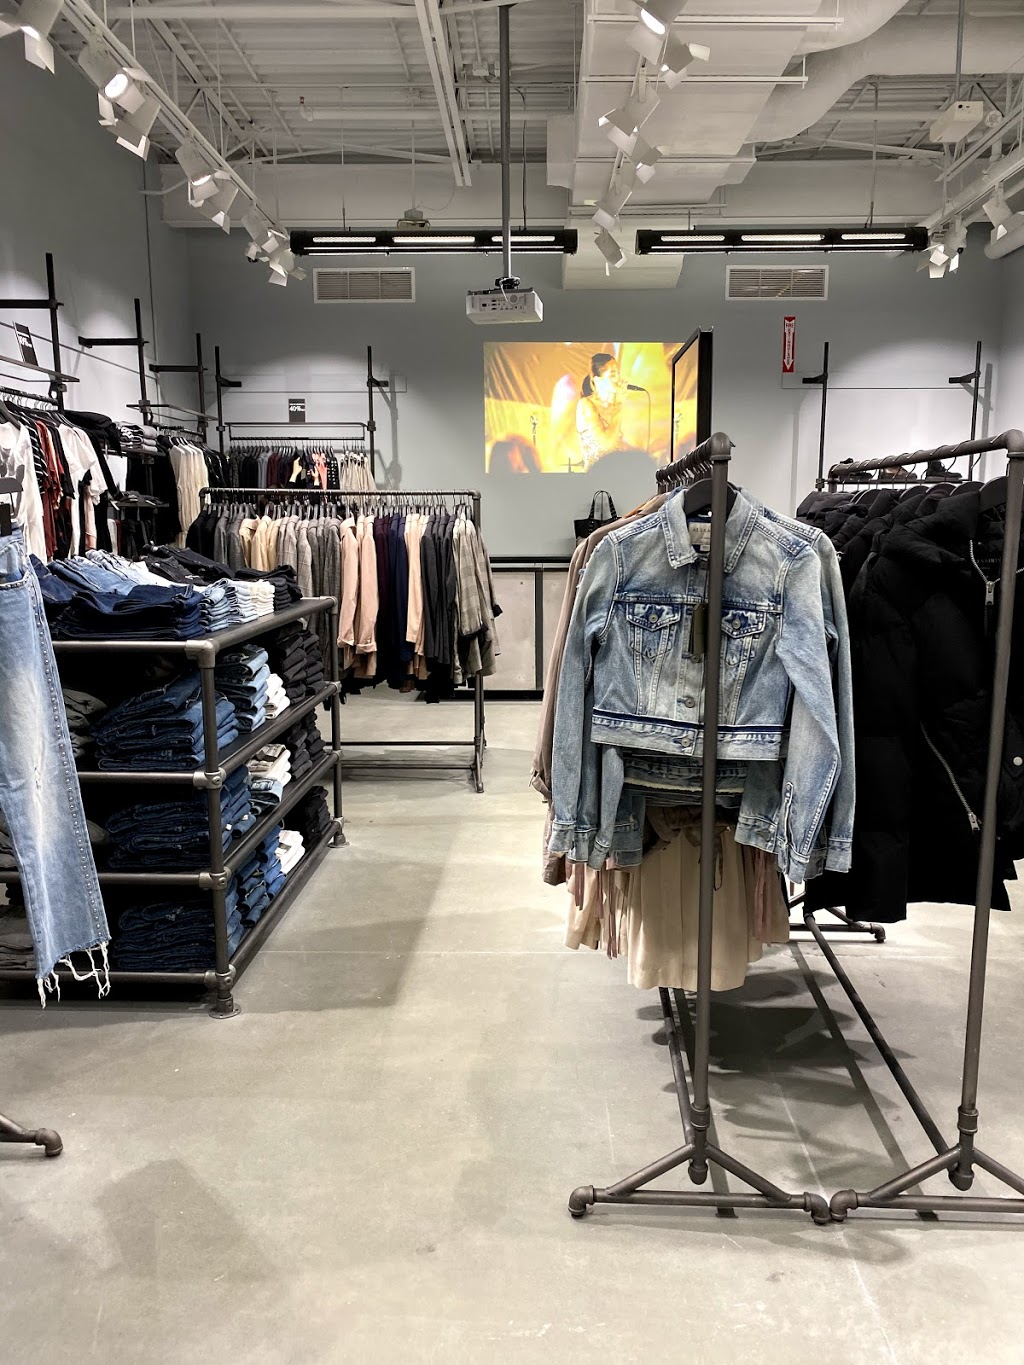 AllSaints Vancouver Outlet | clothing store | 7899 Templeton Station Rd Space 160, Richmond, BC V7B 0B7, Canada | 6049013700 OR +1 604-901-3700